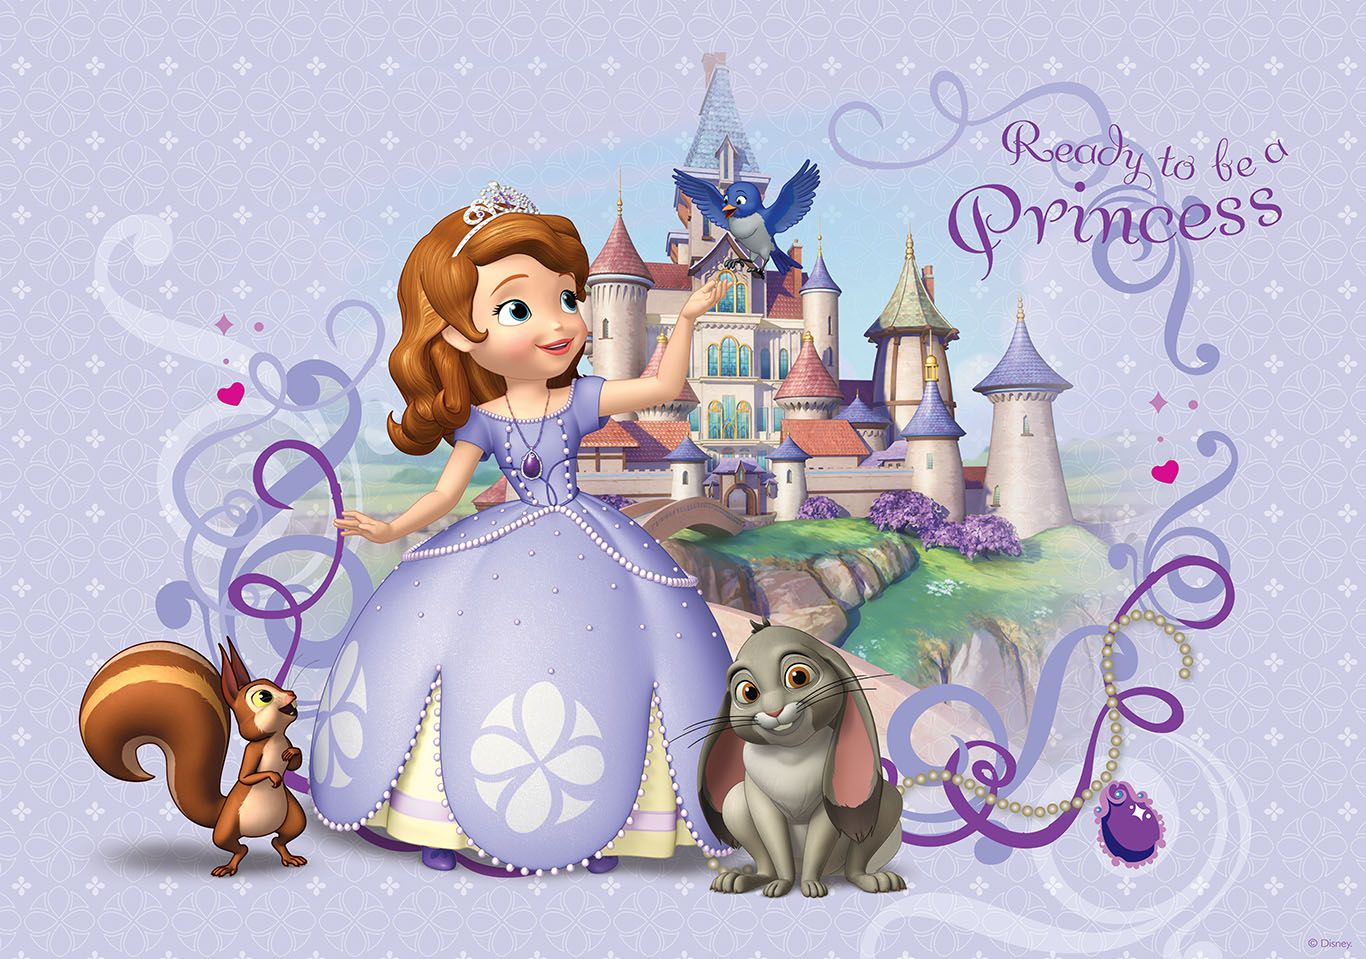 wallpaper disney princess princess sofia first new photo wallpaper disney princess princess sofia first new photo childrens wall mural